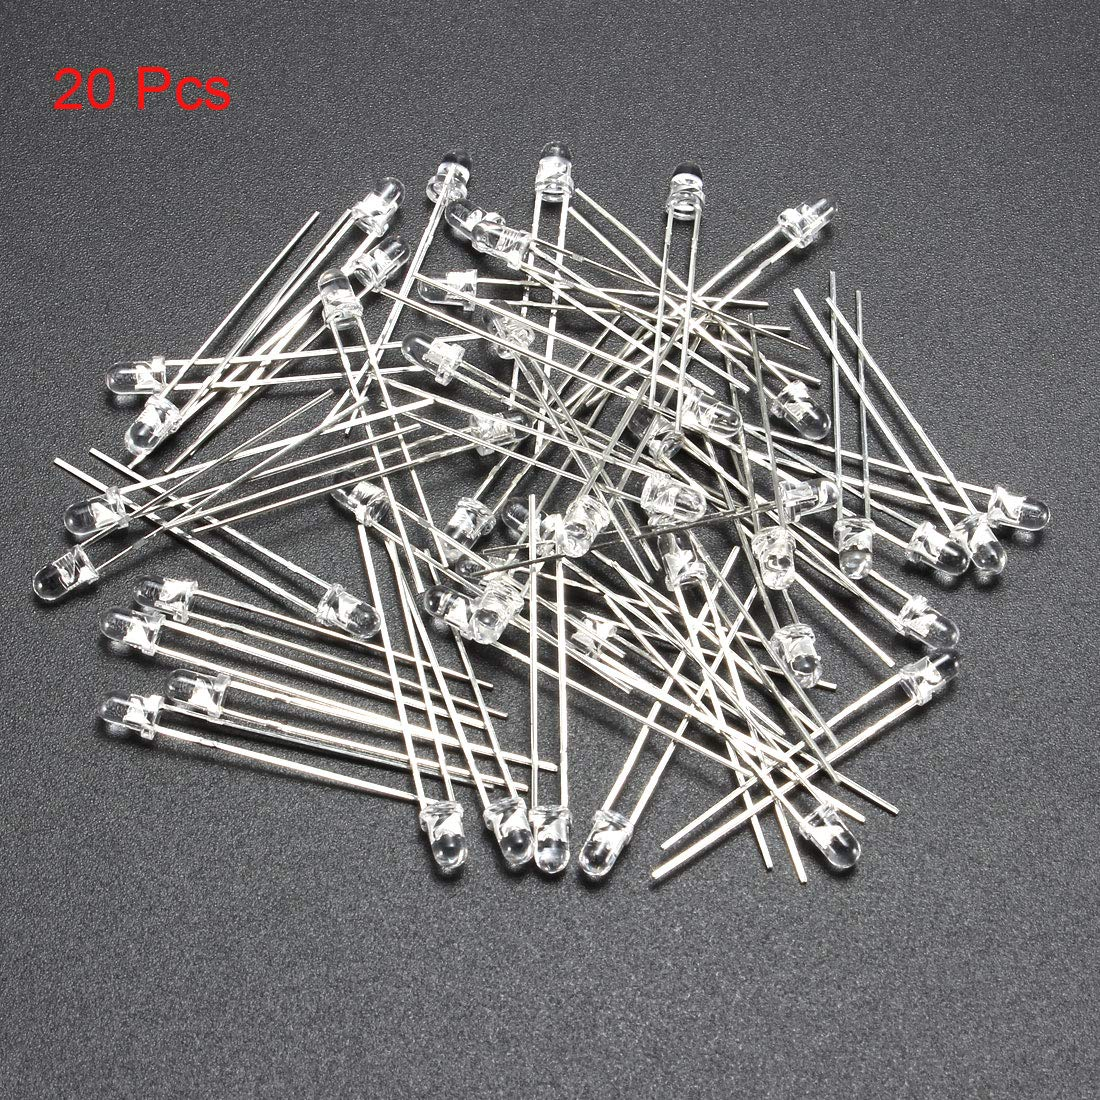 uxcell 50pcs Photosensitive Diode Photodiodes Light Sensitive Sensors,3mm Clear Round Head Receiver Diode